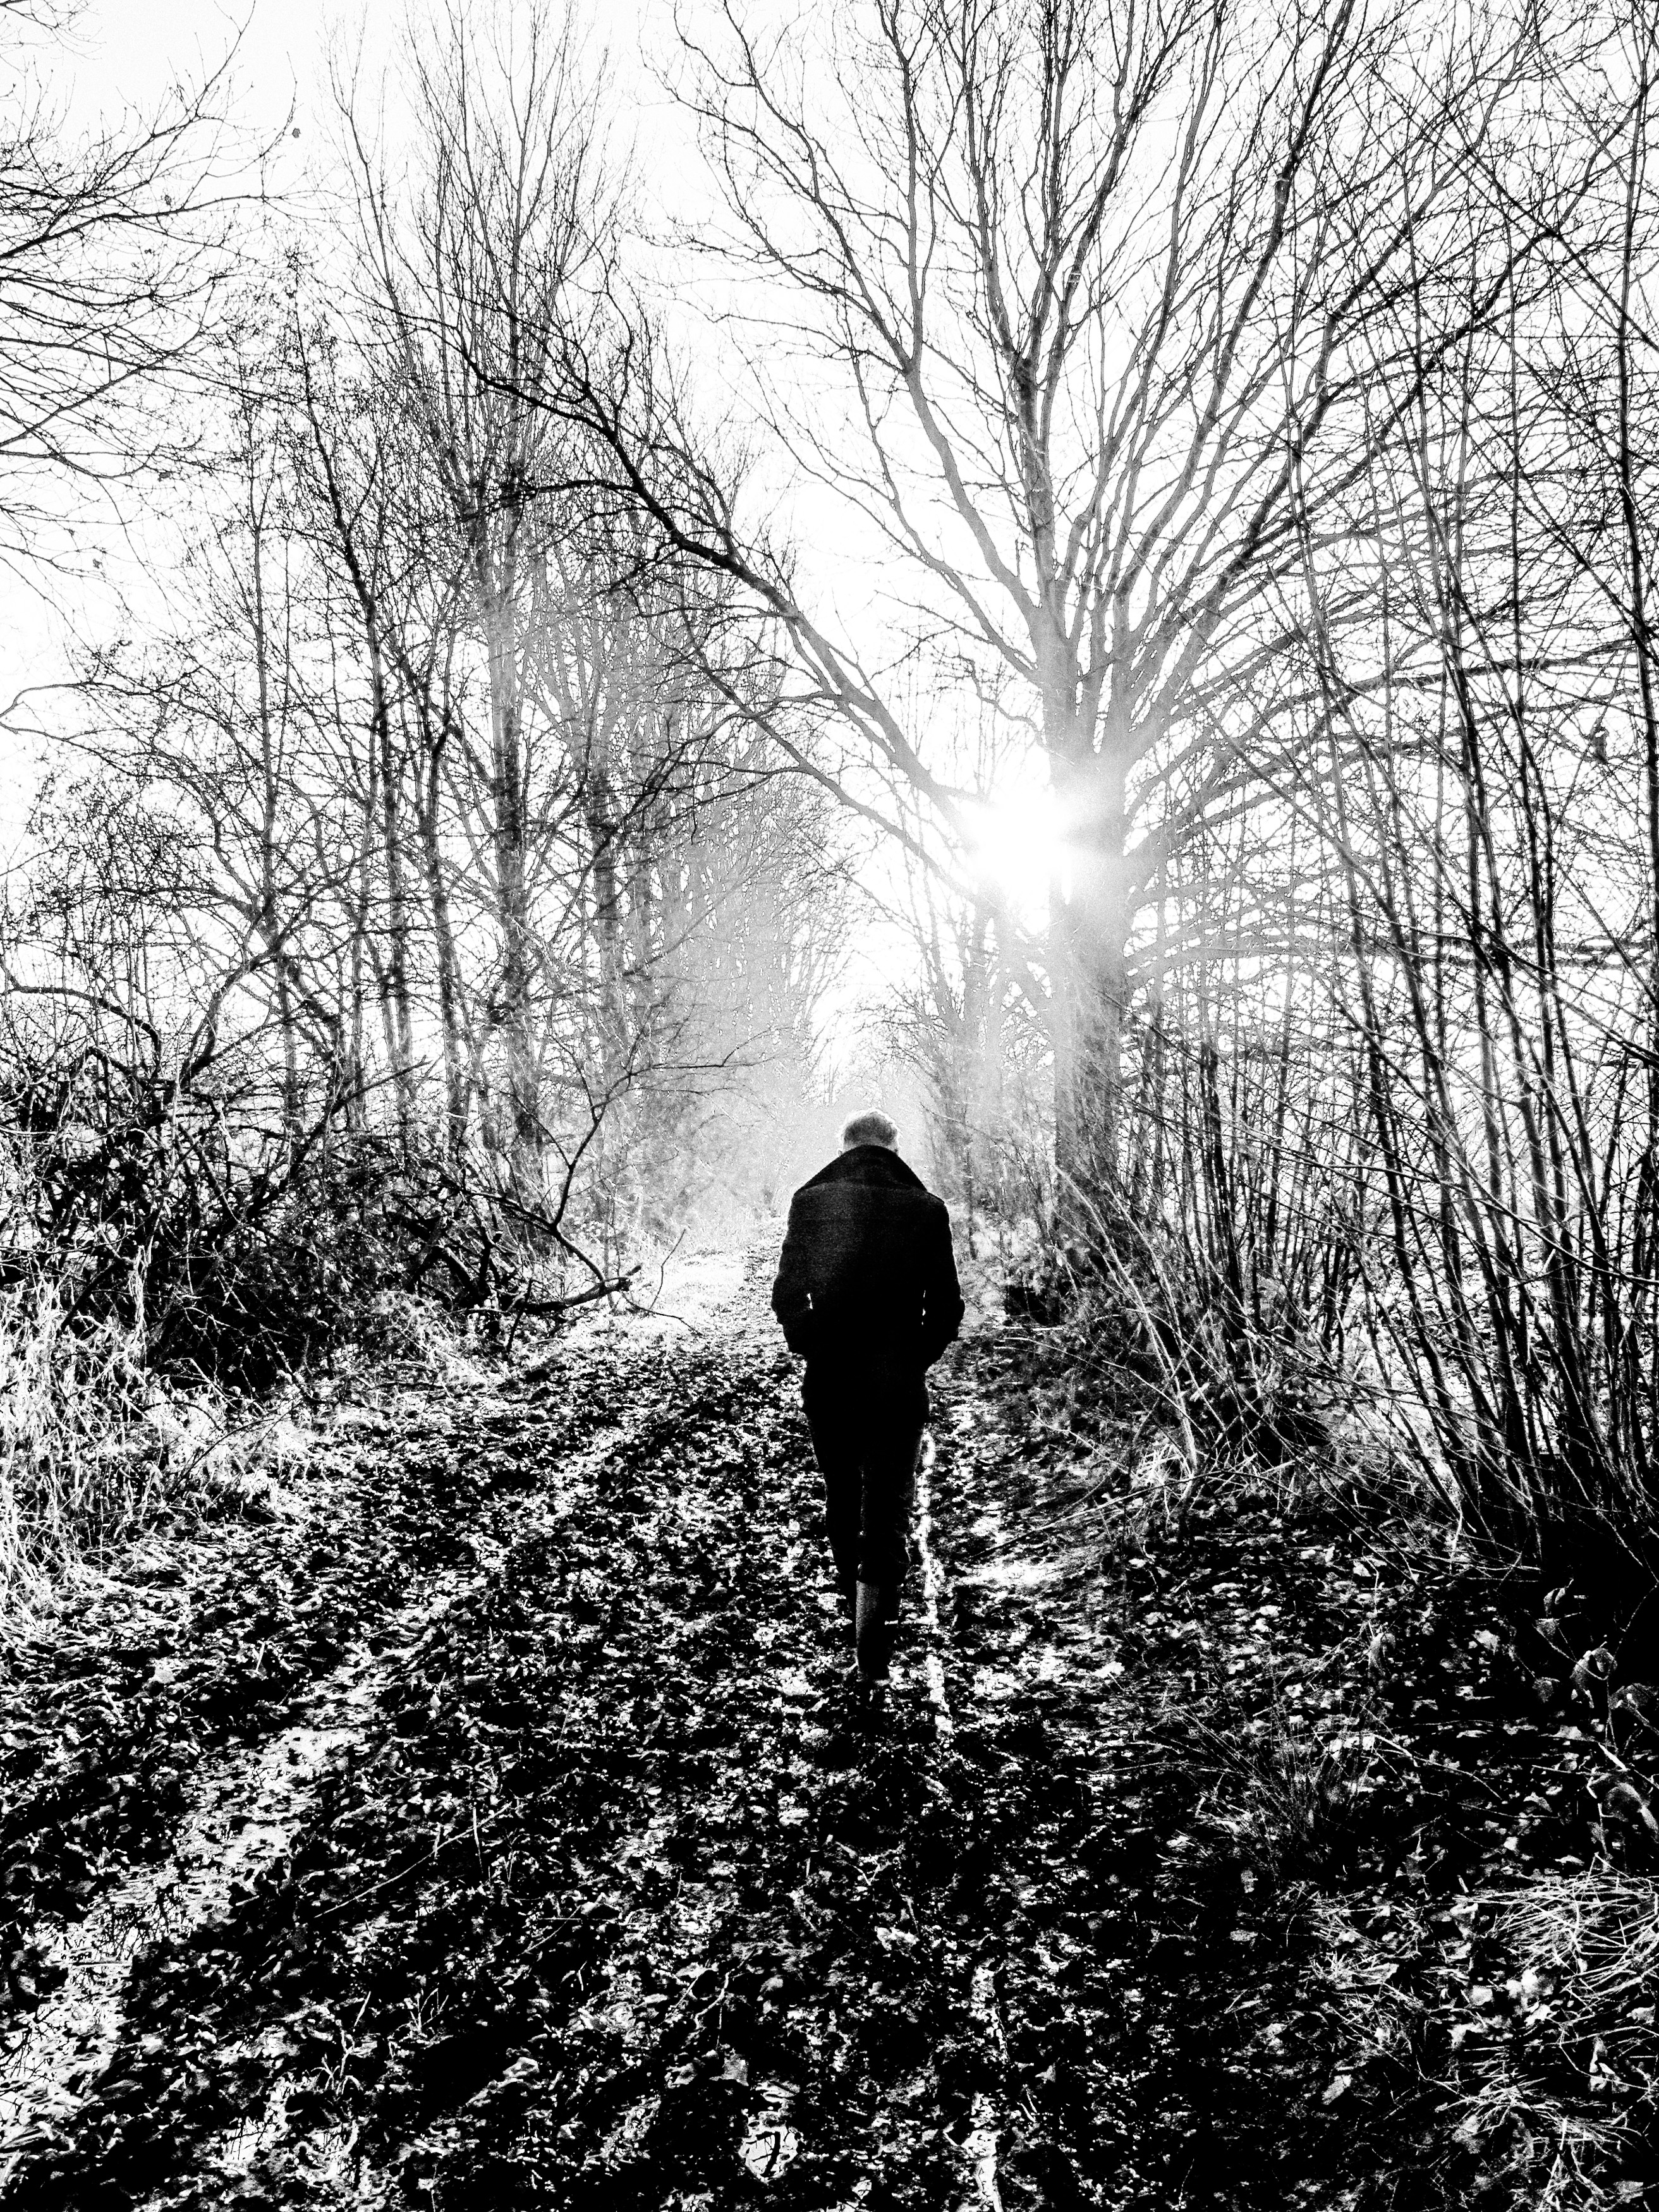 Kreng in the woods, photo by Nathalie Tabury